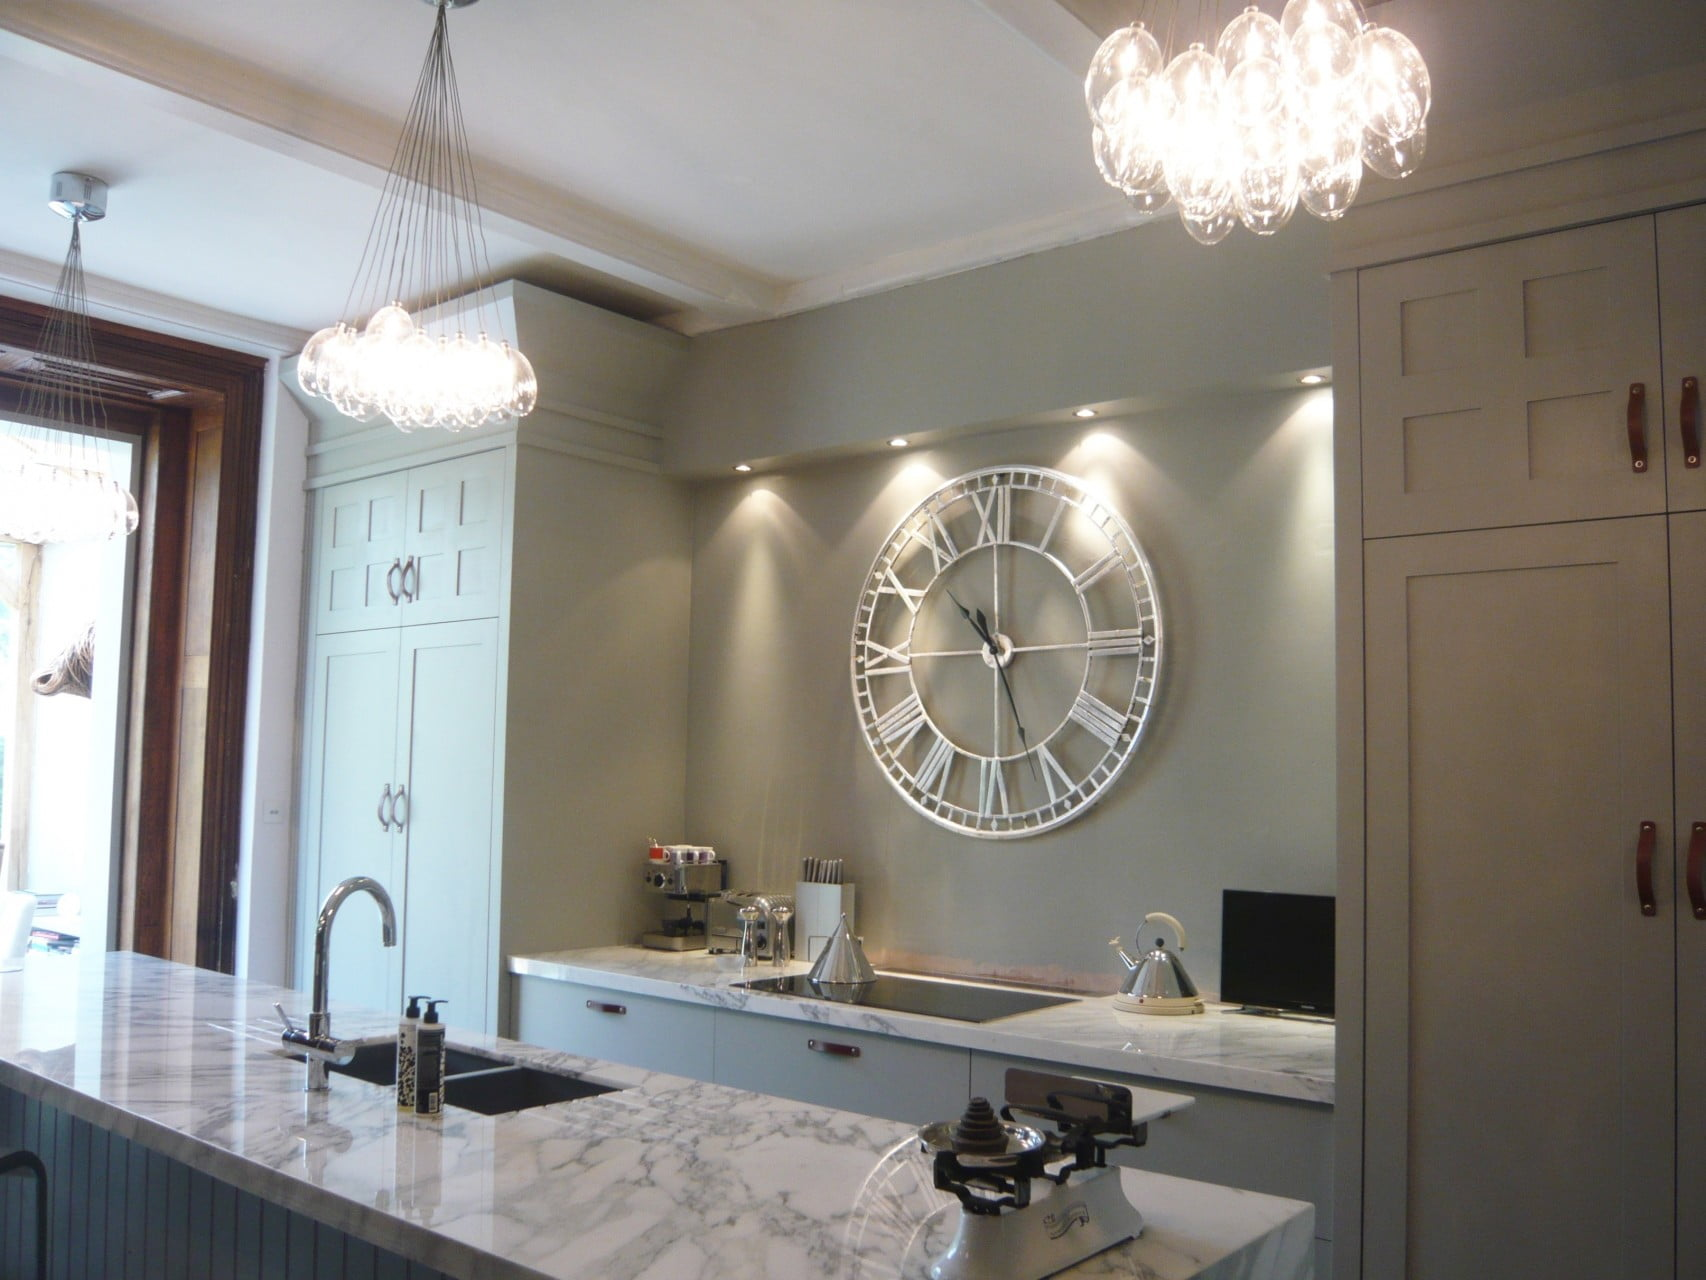 I redesigned our kitchen to make the most of the tall ceilings & to reflect the Victorian house we live in. It's contemporary - not pastiche